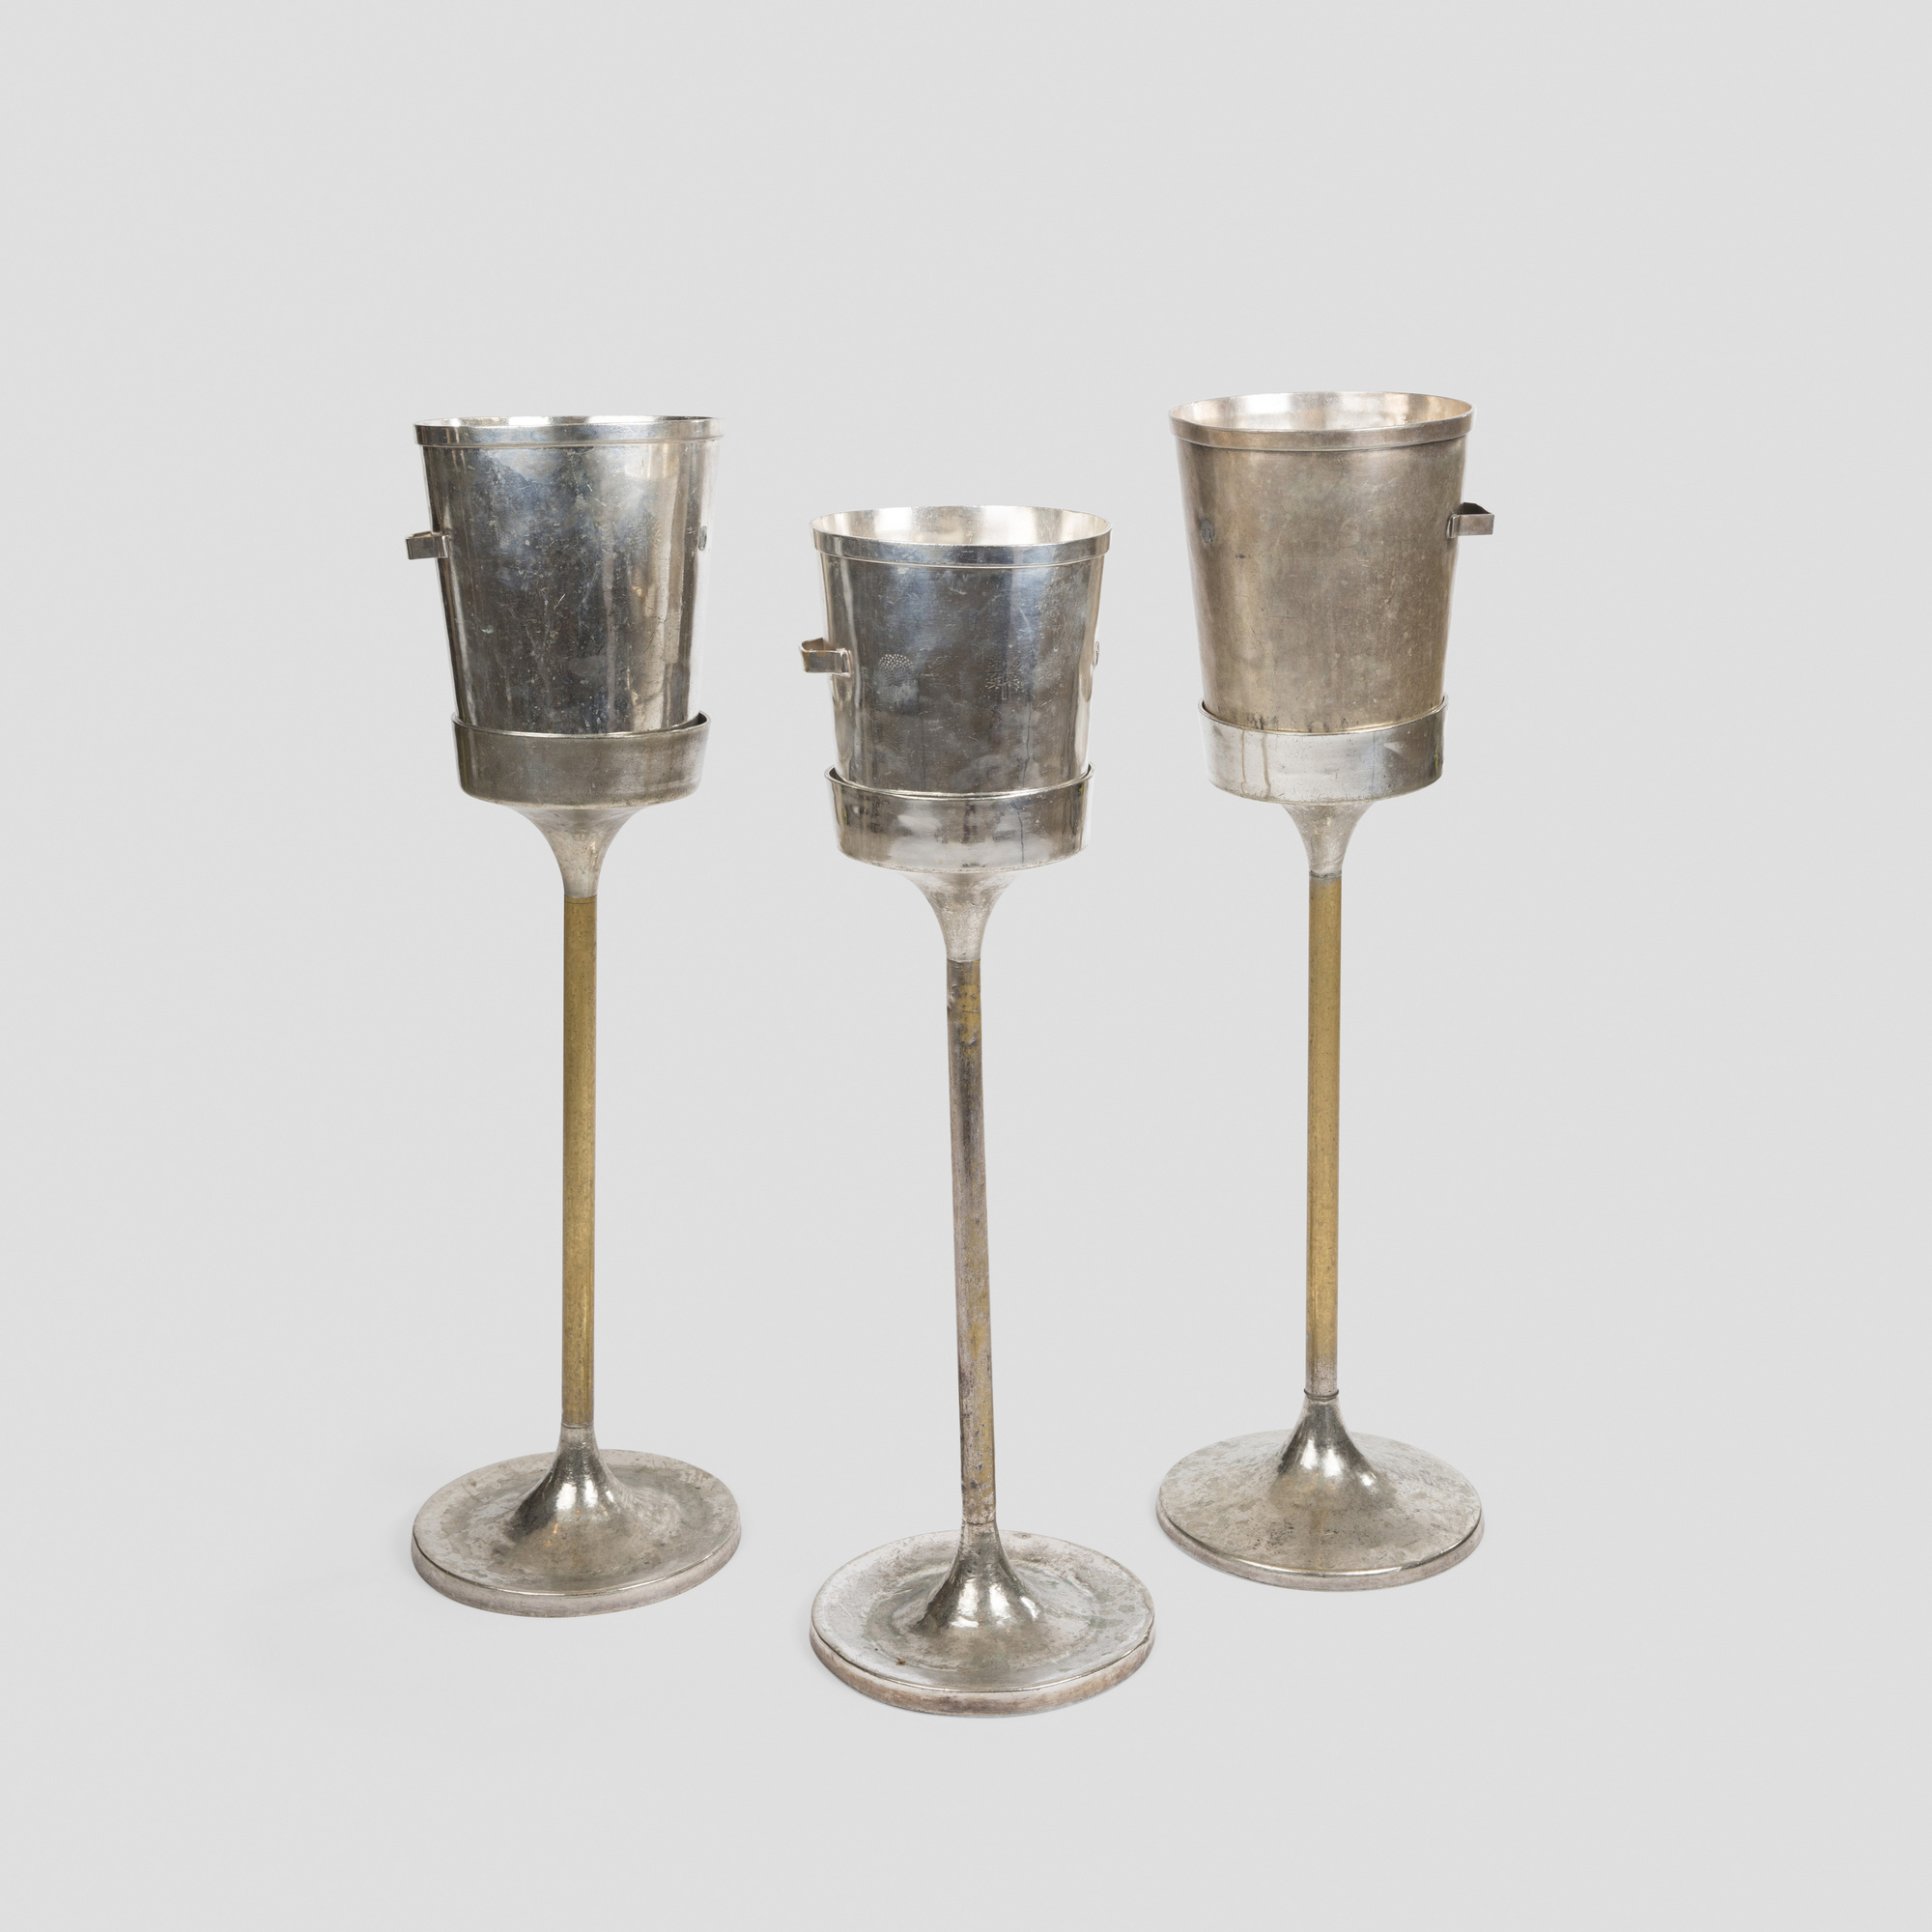 457: Garth and Ada Louise Huxtable / Wine coolers with stands from The Four Seasons, set of three (1 of 1)